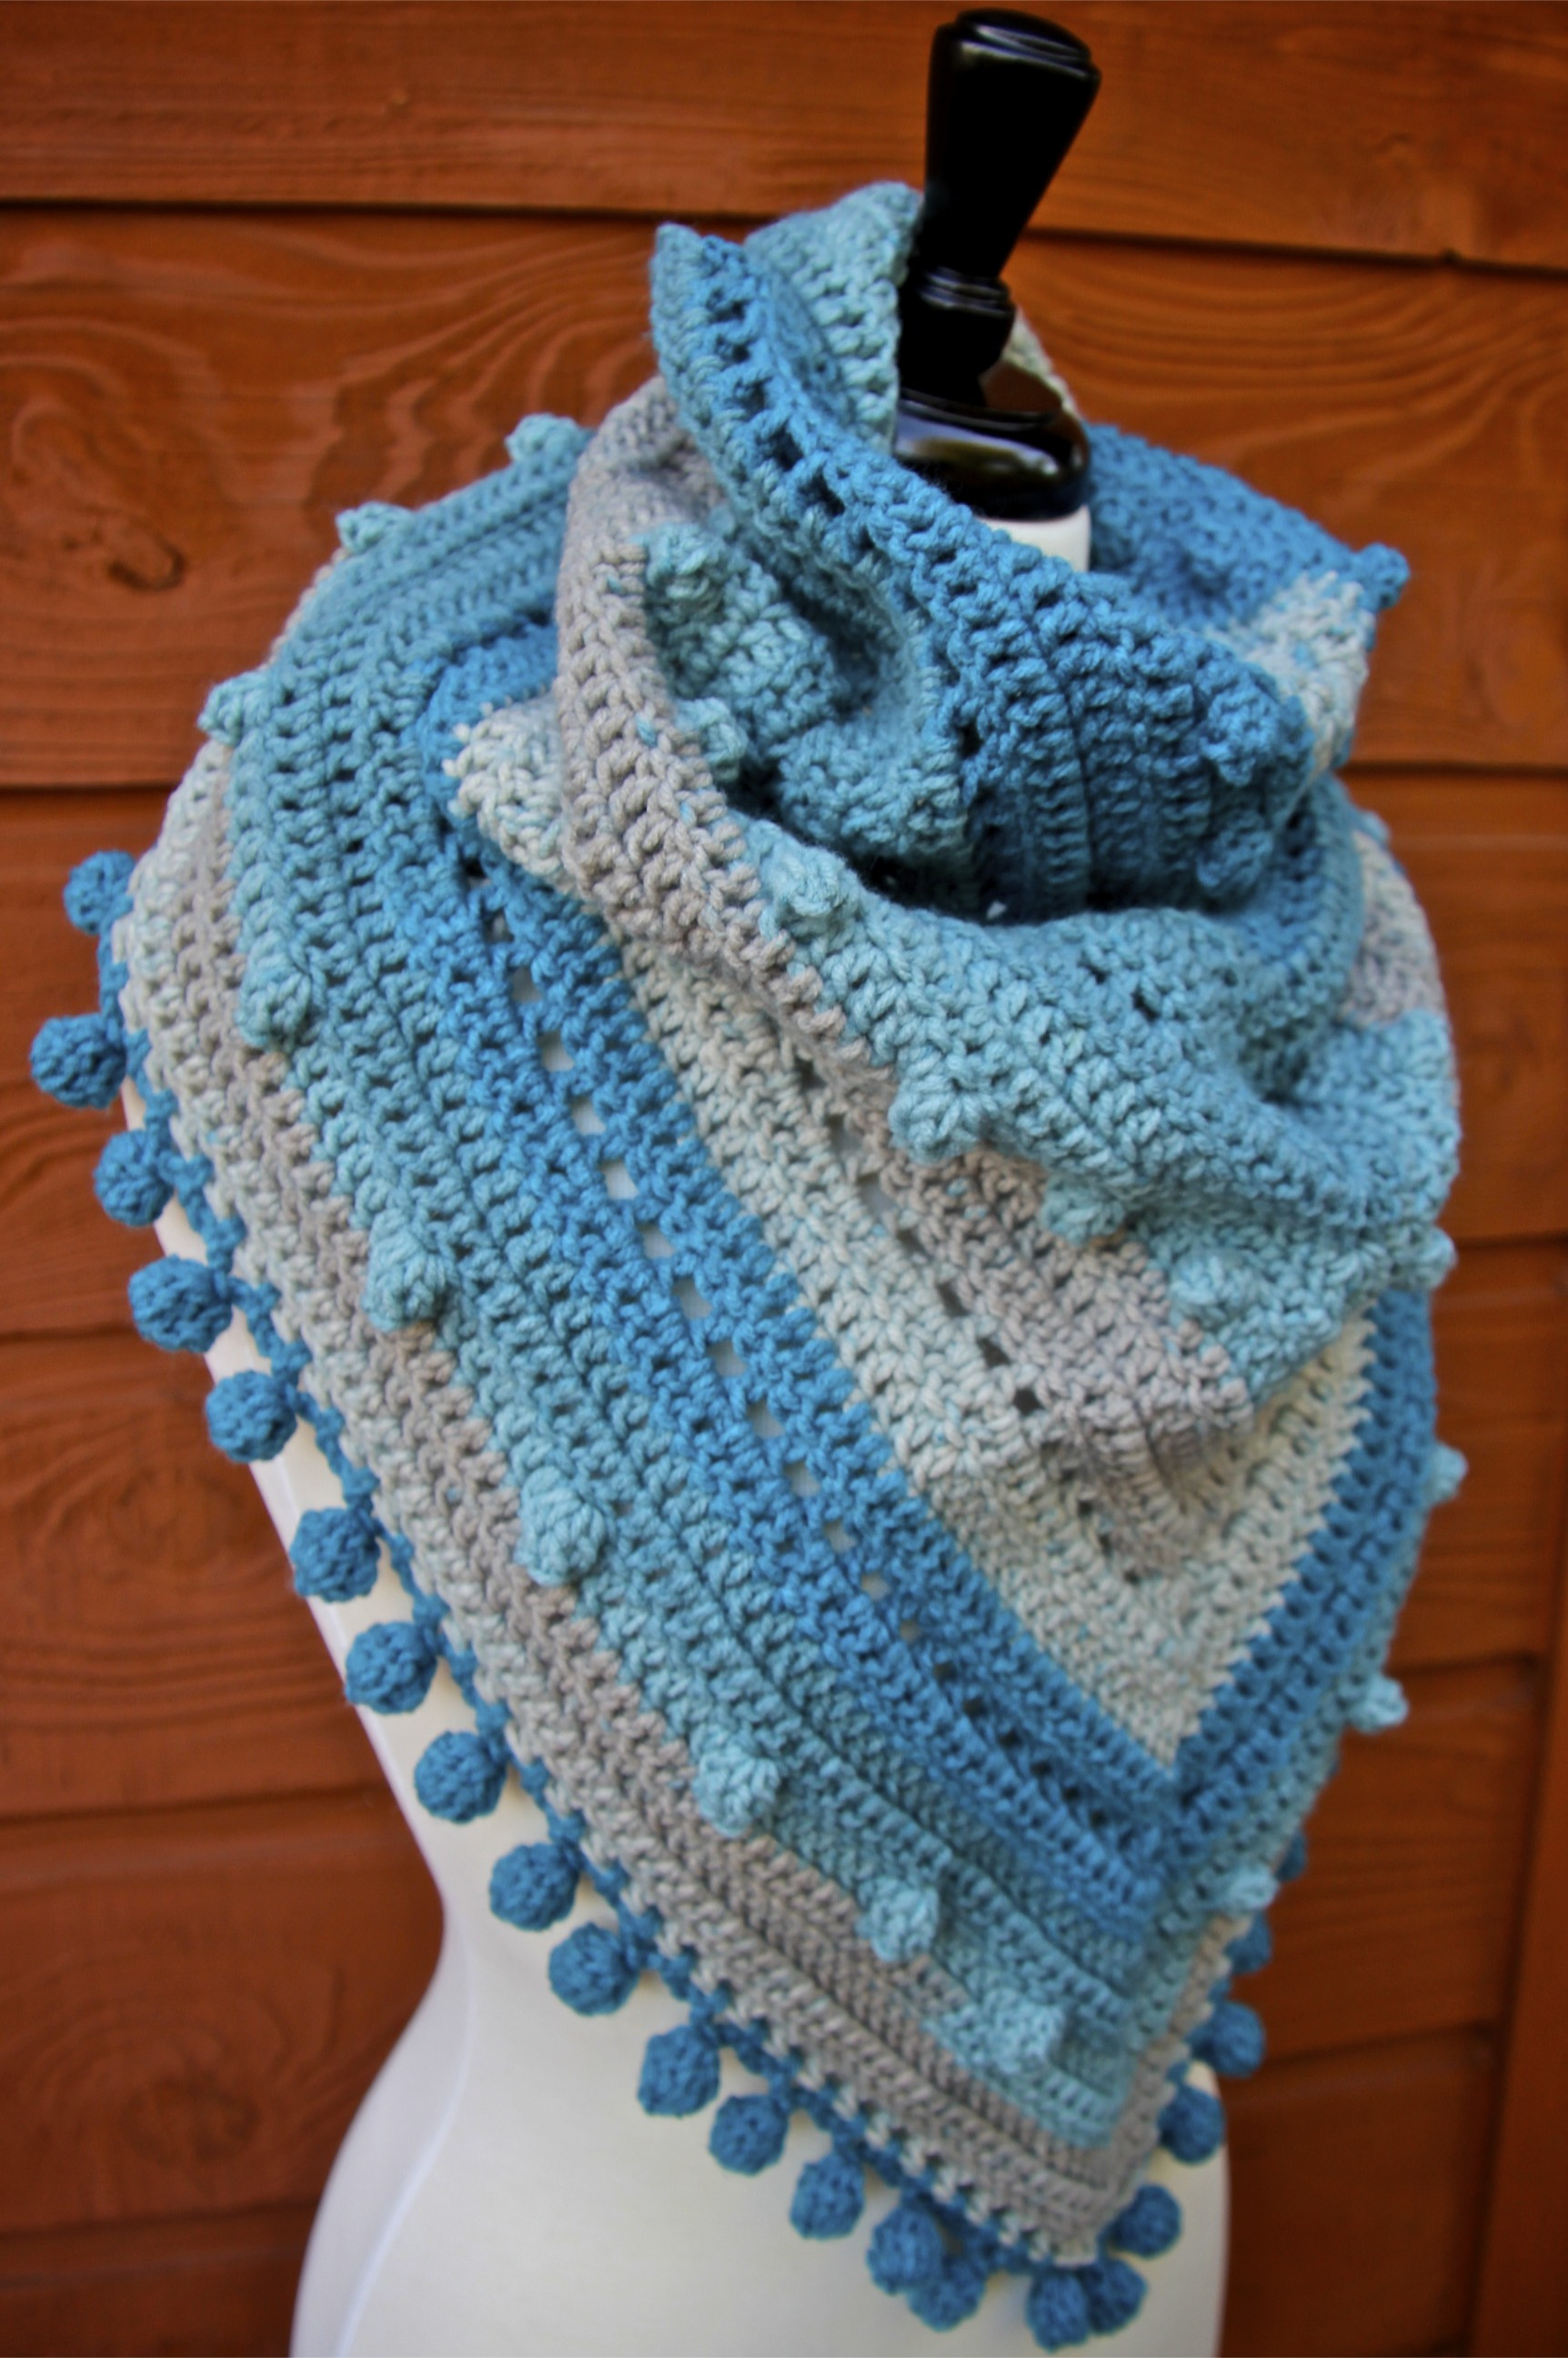 Misty Morning Triangle Scarf Shawlette Crochet Pattern